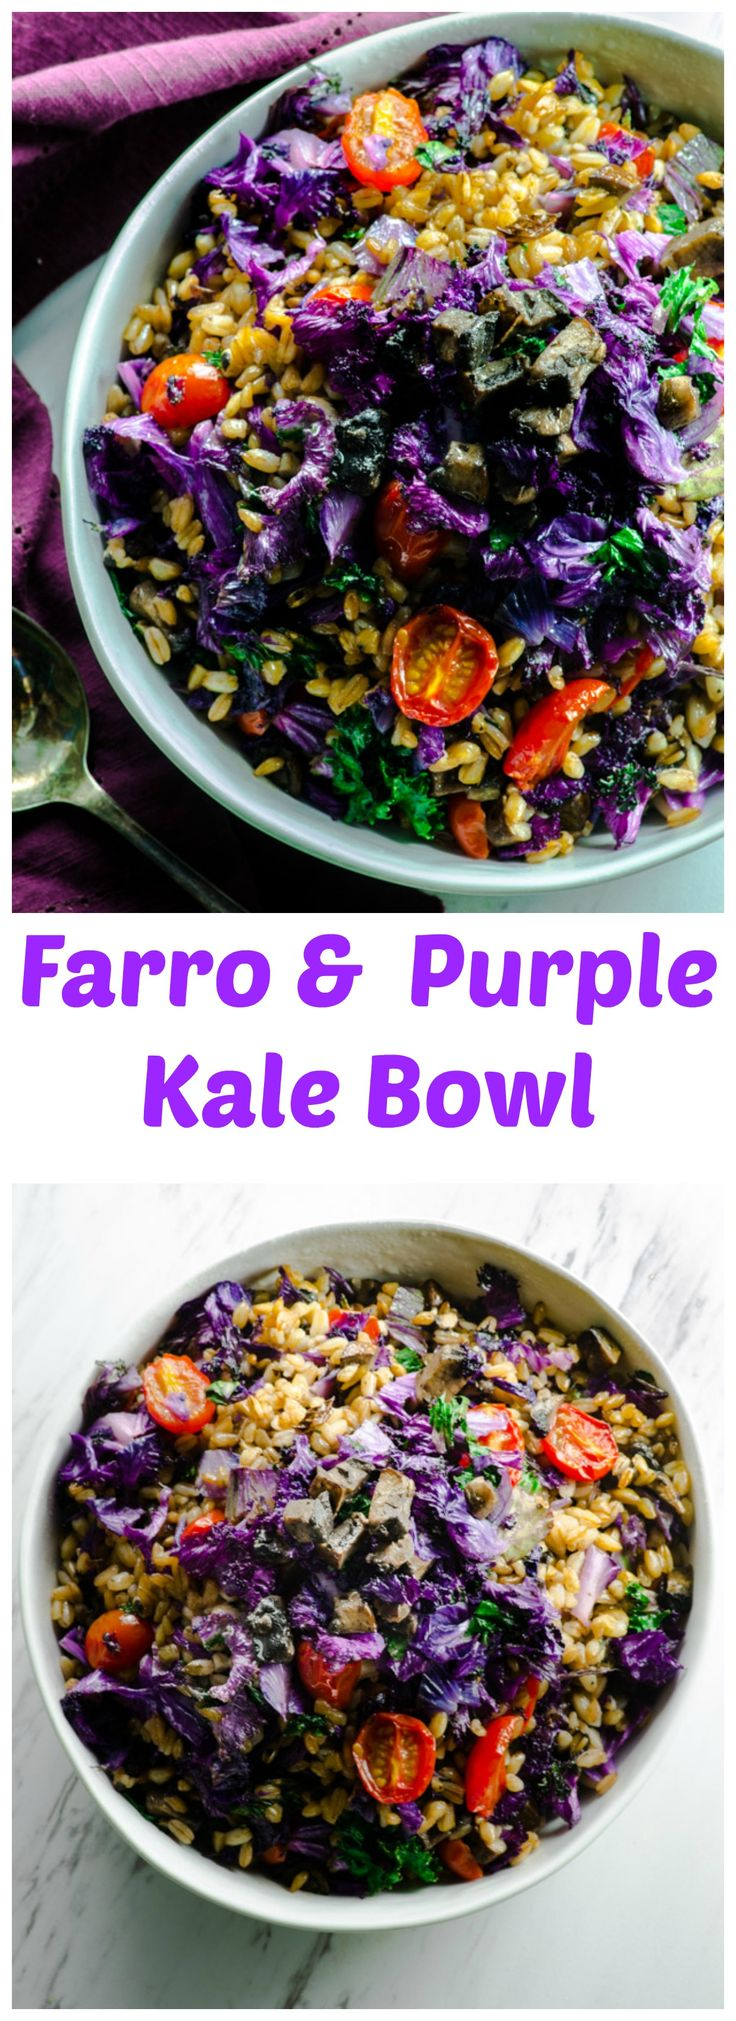 Farro and purple kale bowl - Super healthy vegetables, filling whole grain farro make a delicious vegetarian and vegan main dish.